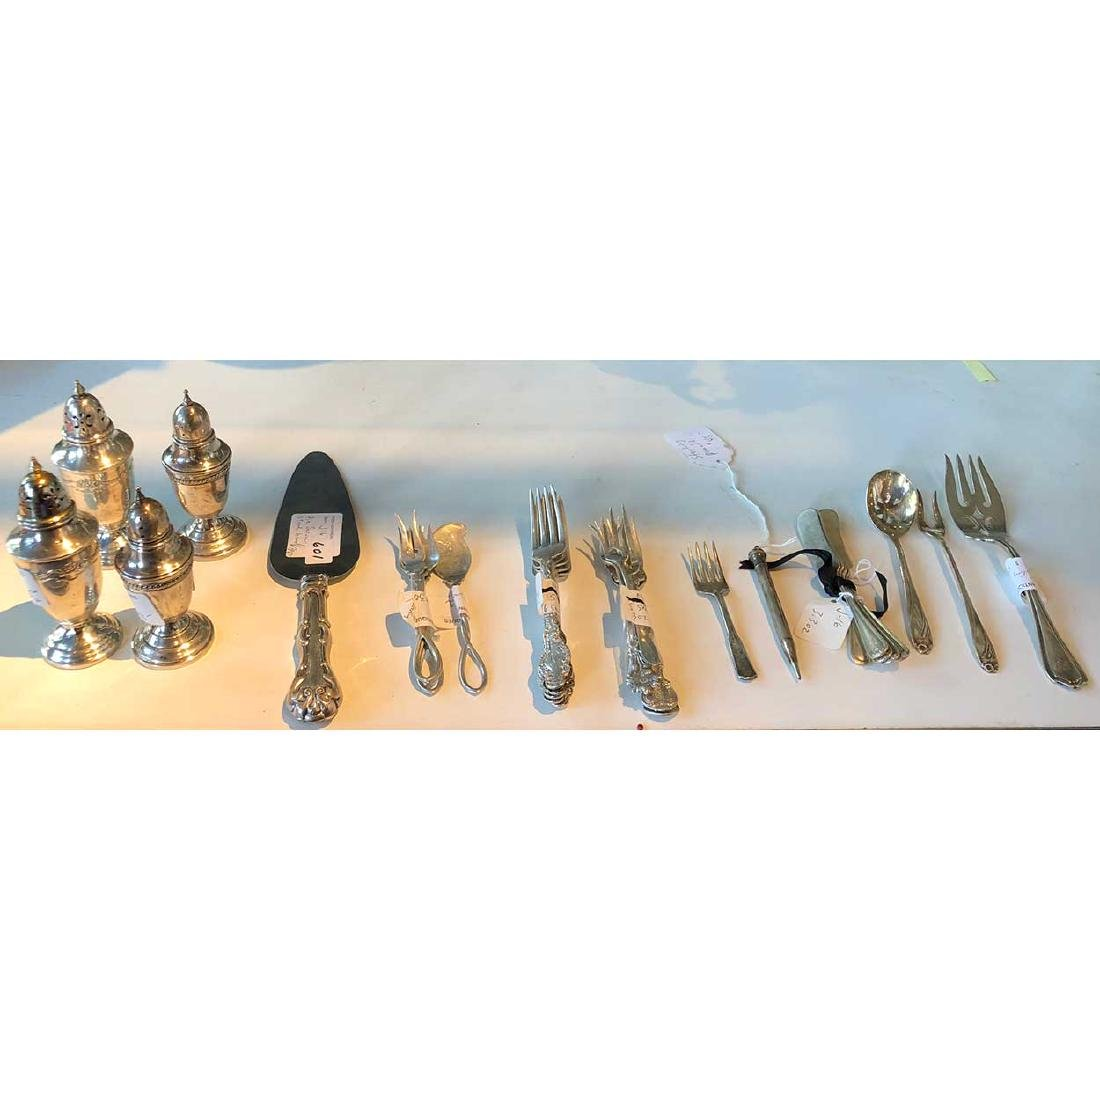 31 Pieces of Silver Holloware and Flatware Pieces